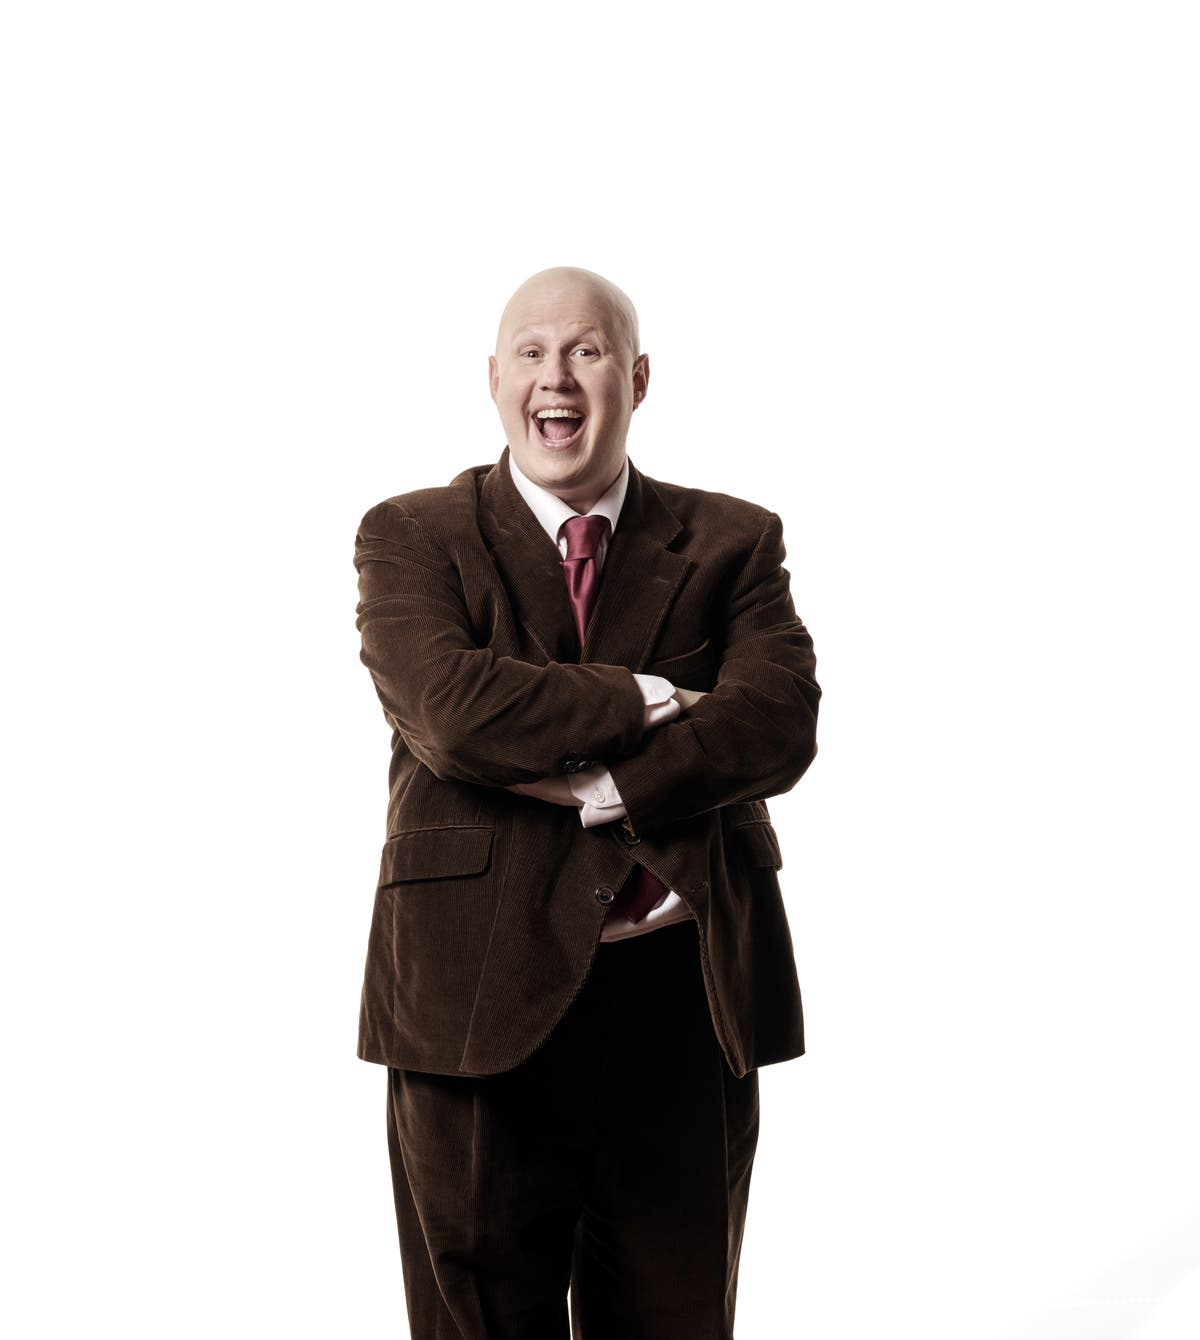 5 minutes with Matt Lucas – on being silly, getting back to Bake Off, and the game to play on a date